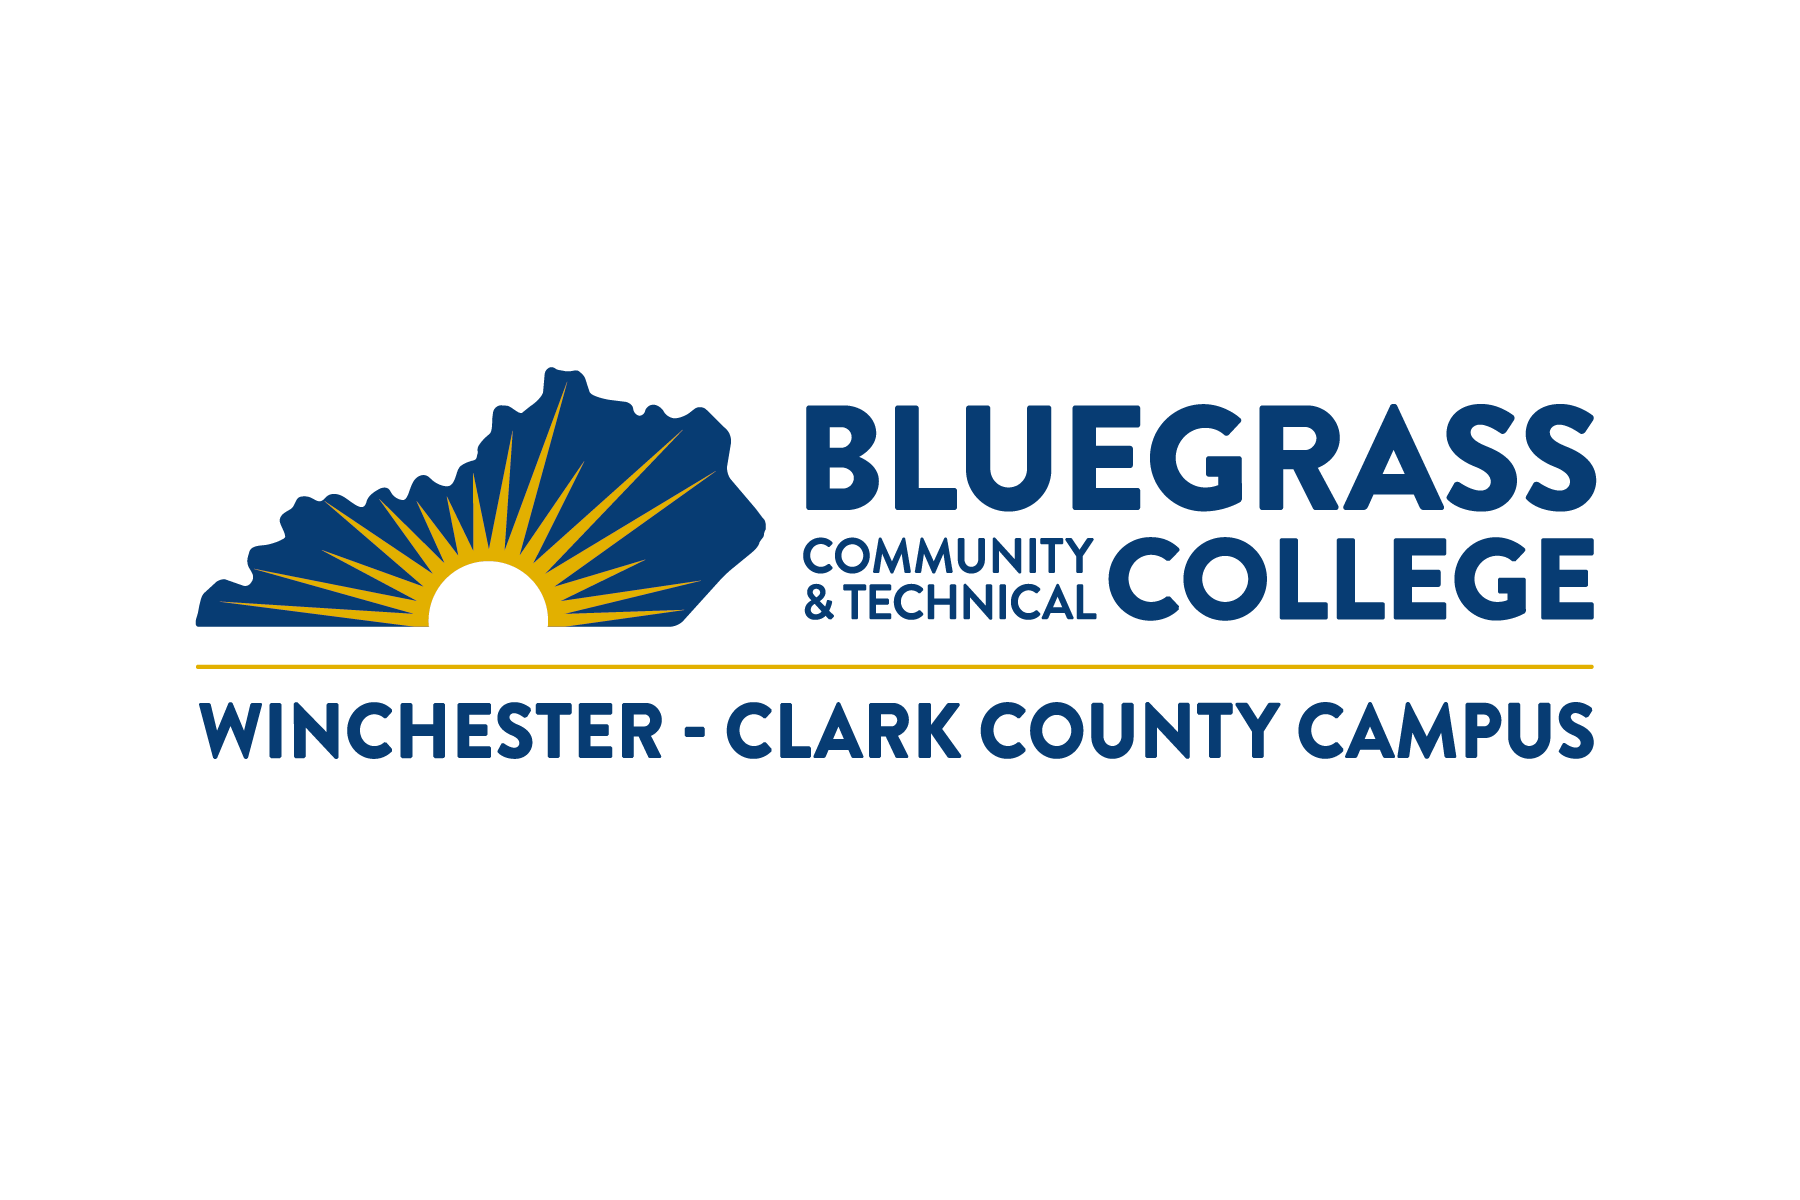 bctc winchester campus horizontal logo